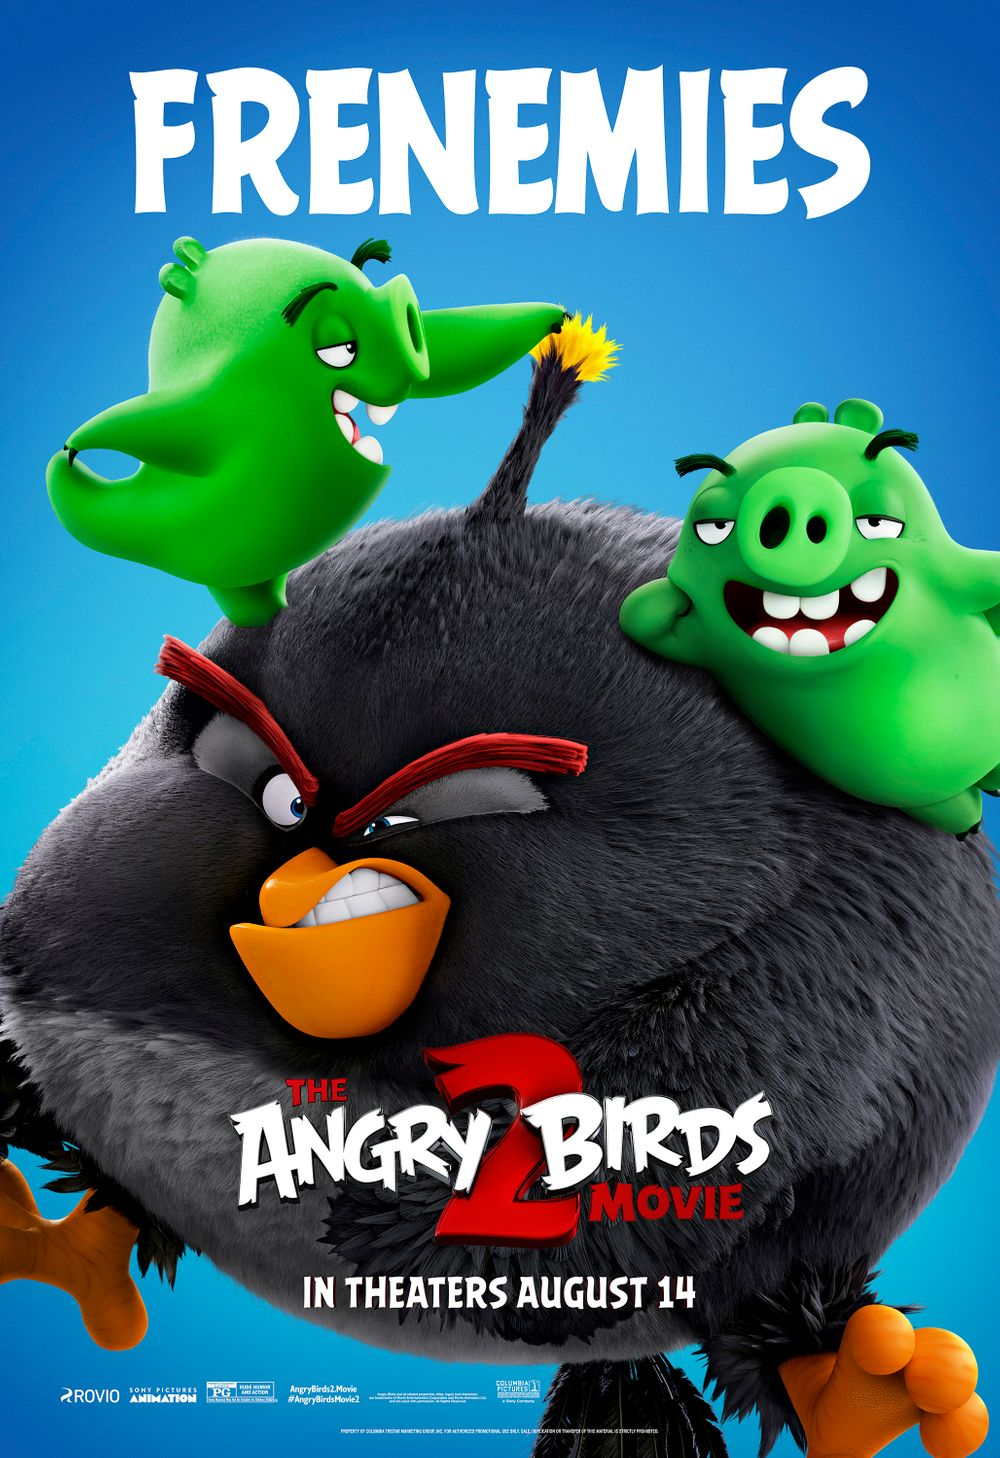 1-The Angry Birds Movie 2